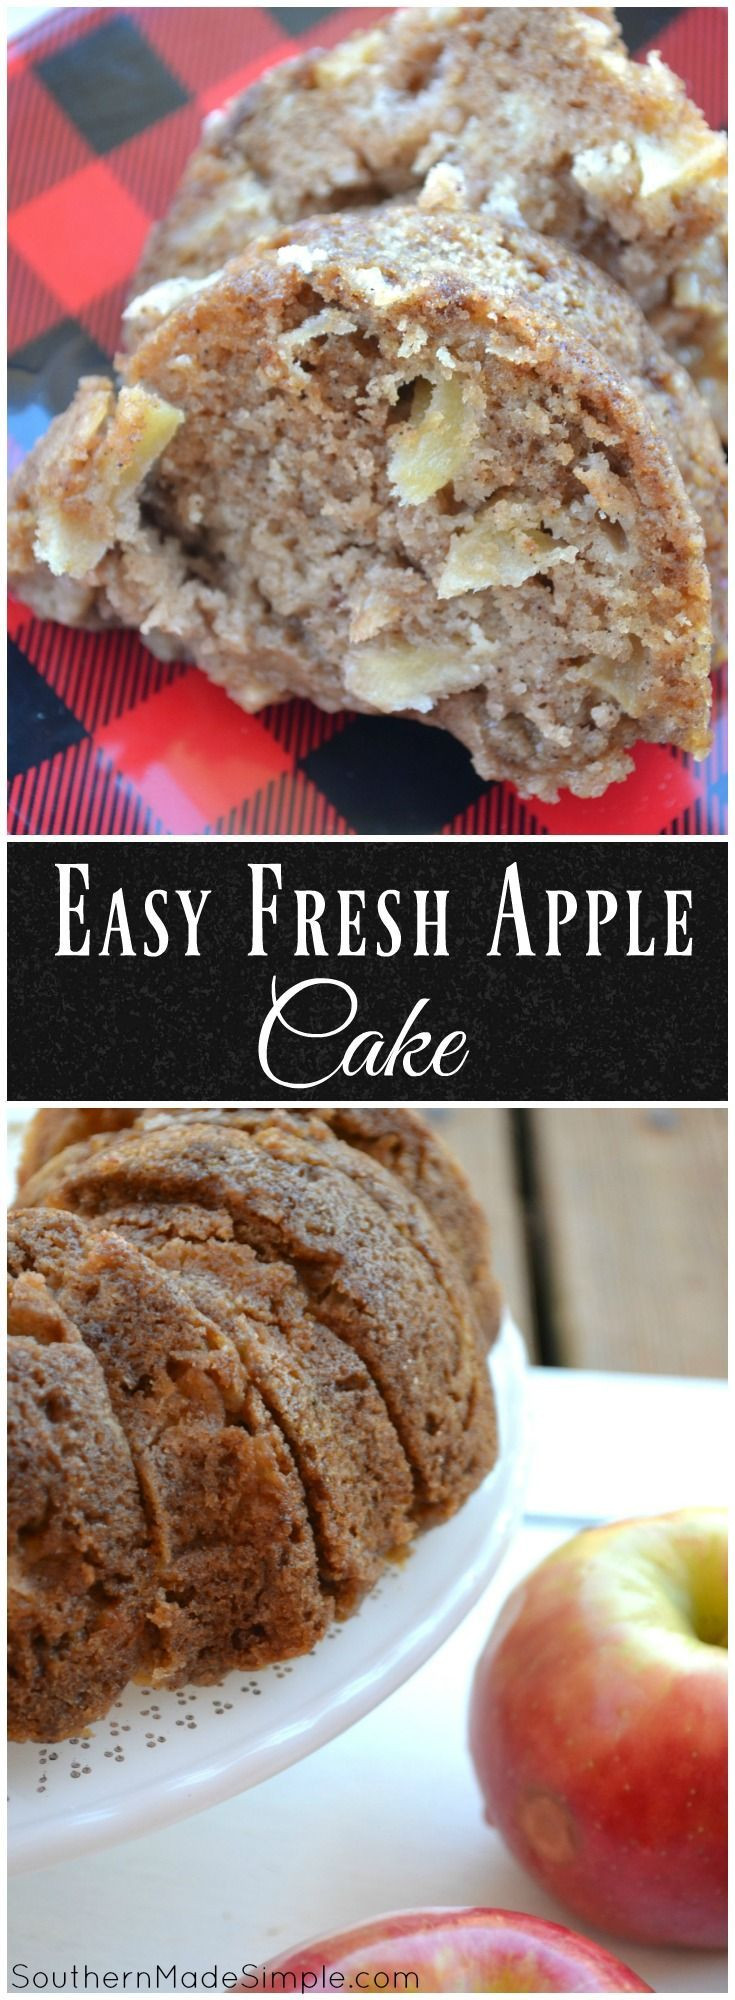 Easy Apple Dessert Recipes With Fresh Apples  17 Best ideas about Easy Apple Cake on Pinterest